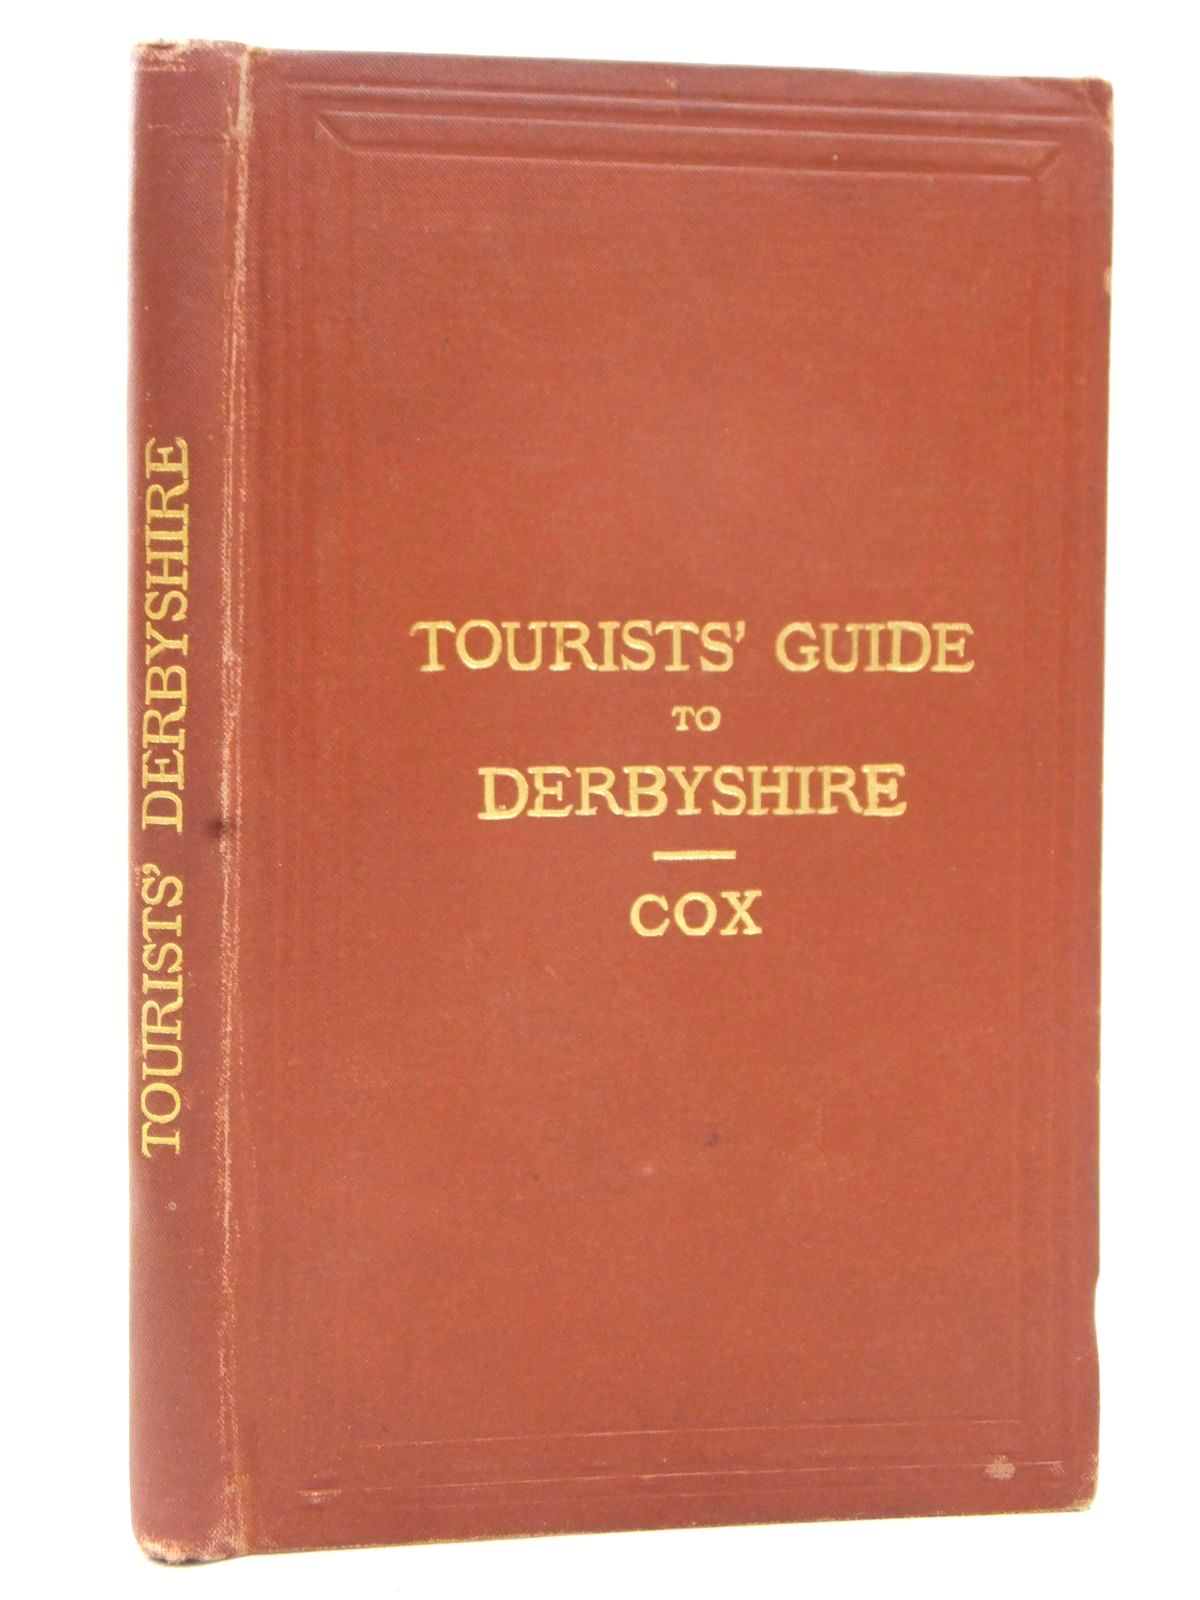 Photo of TOURIST'S GUIDE TO DERBYSHIRE written by Cox, J. Charles published by Edward Stanford (STOCK CODE: 1609453)  for sale by Stella & Rose's Books